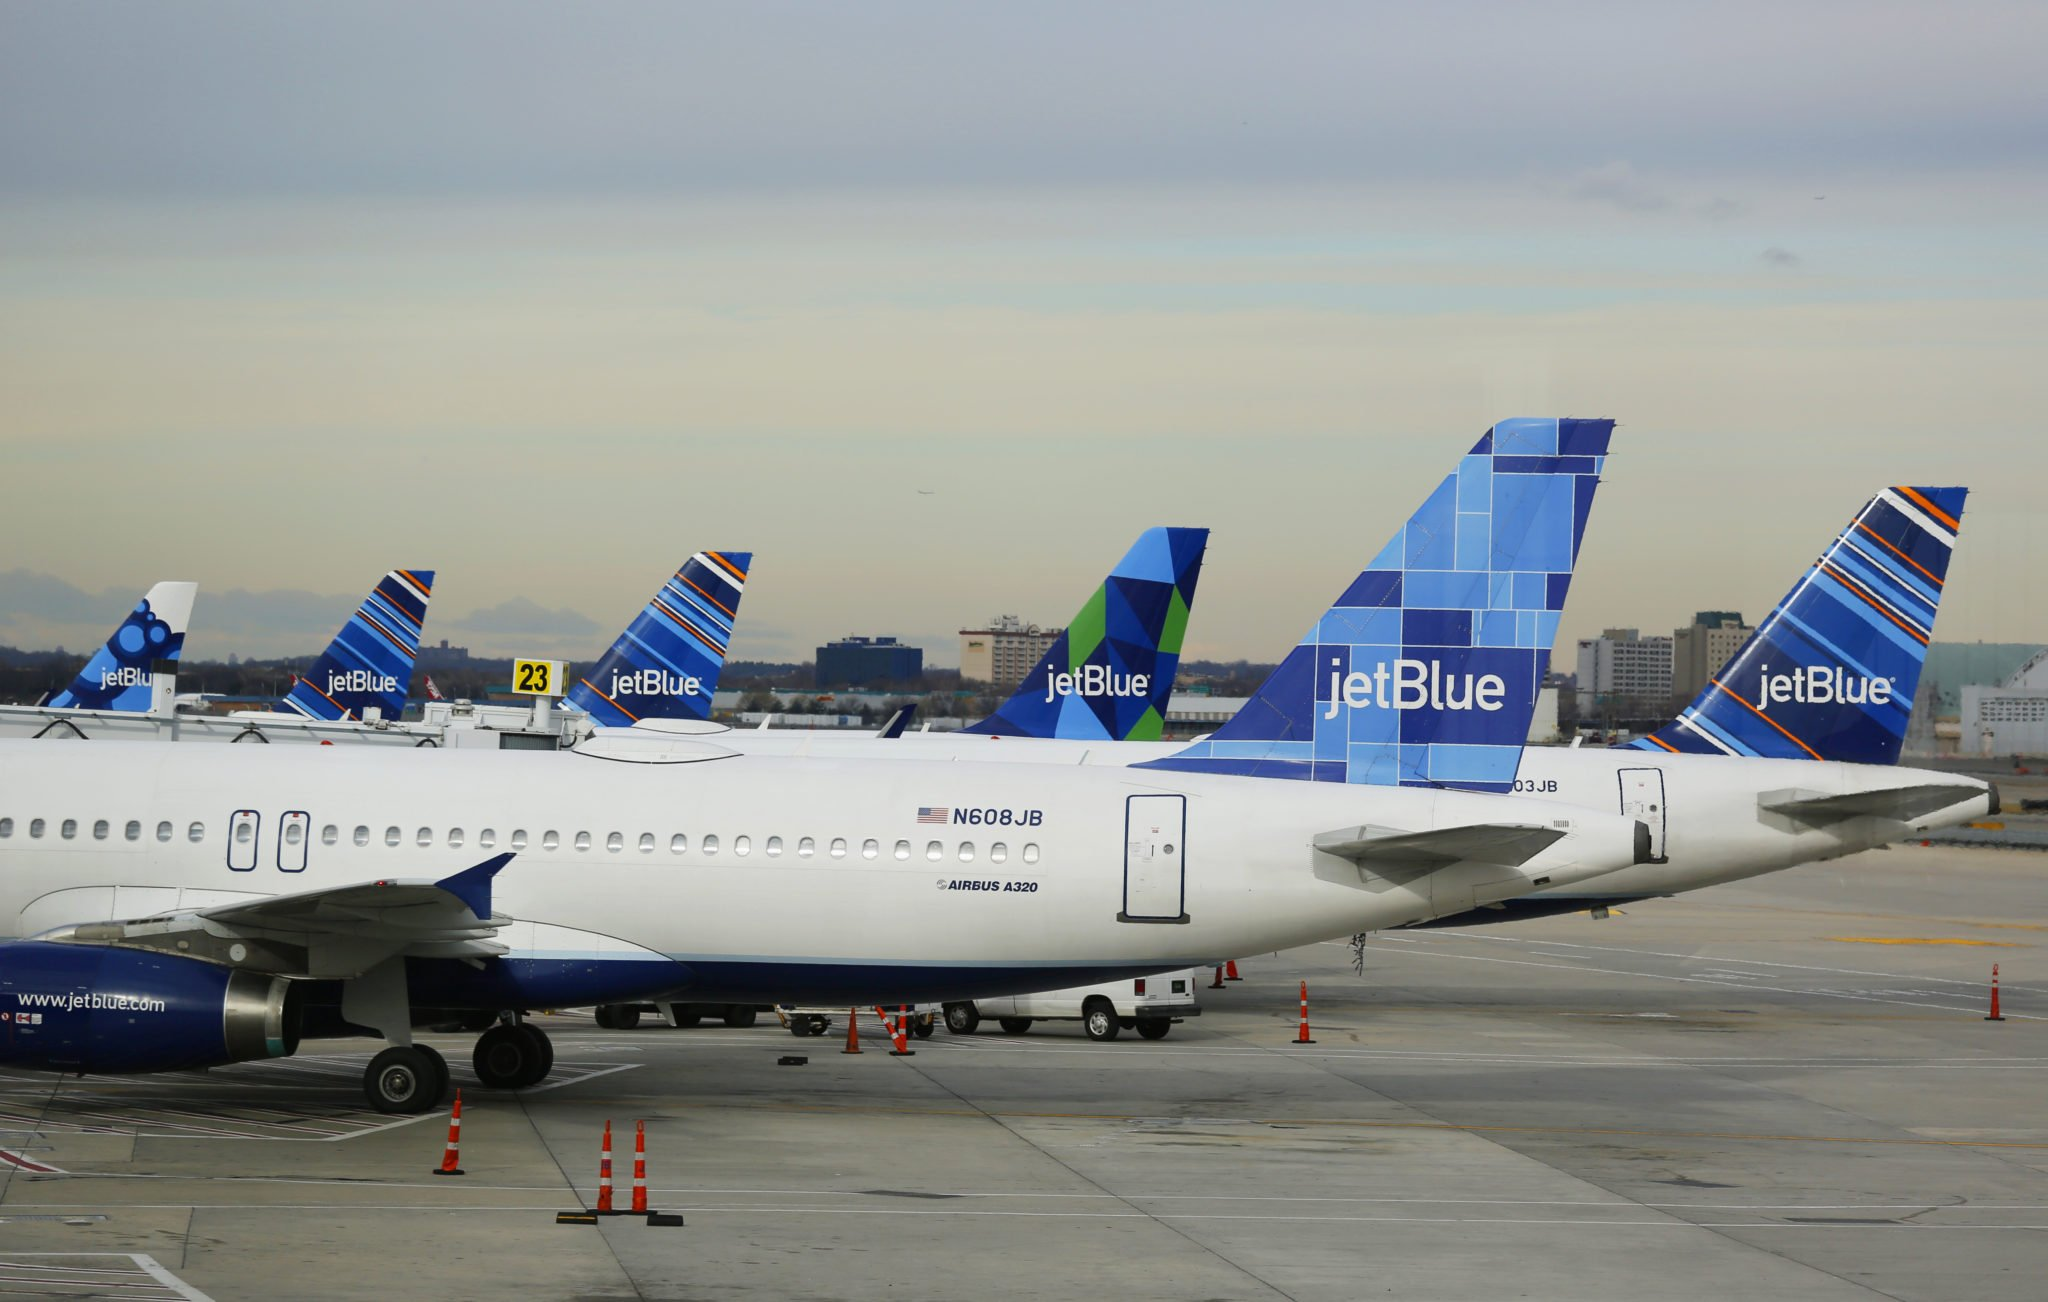 jetblue airlines core competency Strengths low cost airline fares and essay on jet blue case study discuss whether or not jetblue exemplified this core competency during the.